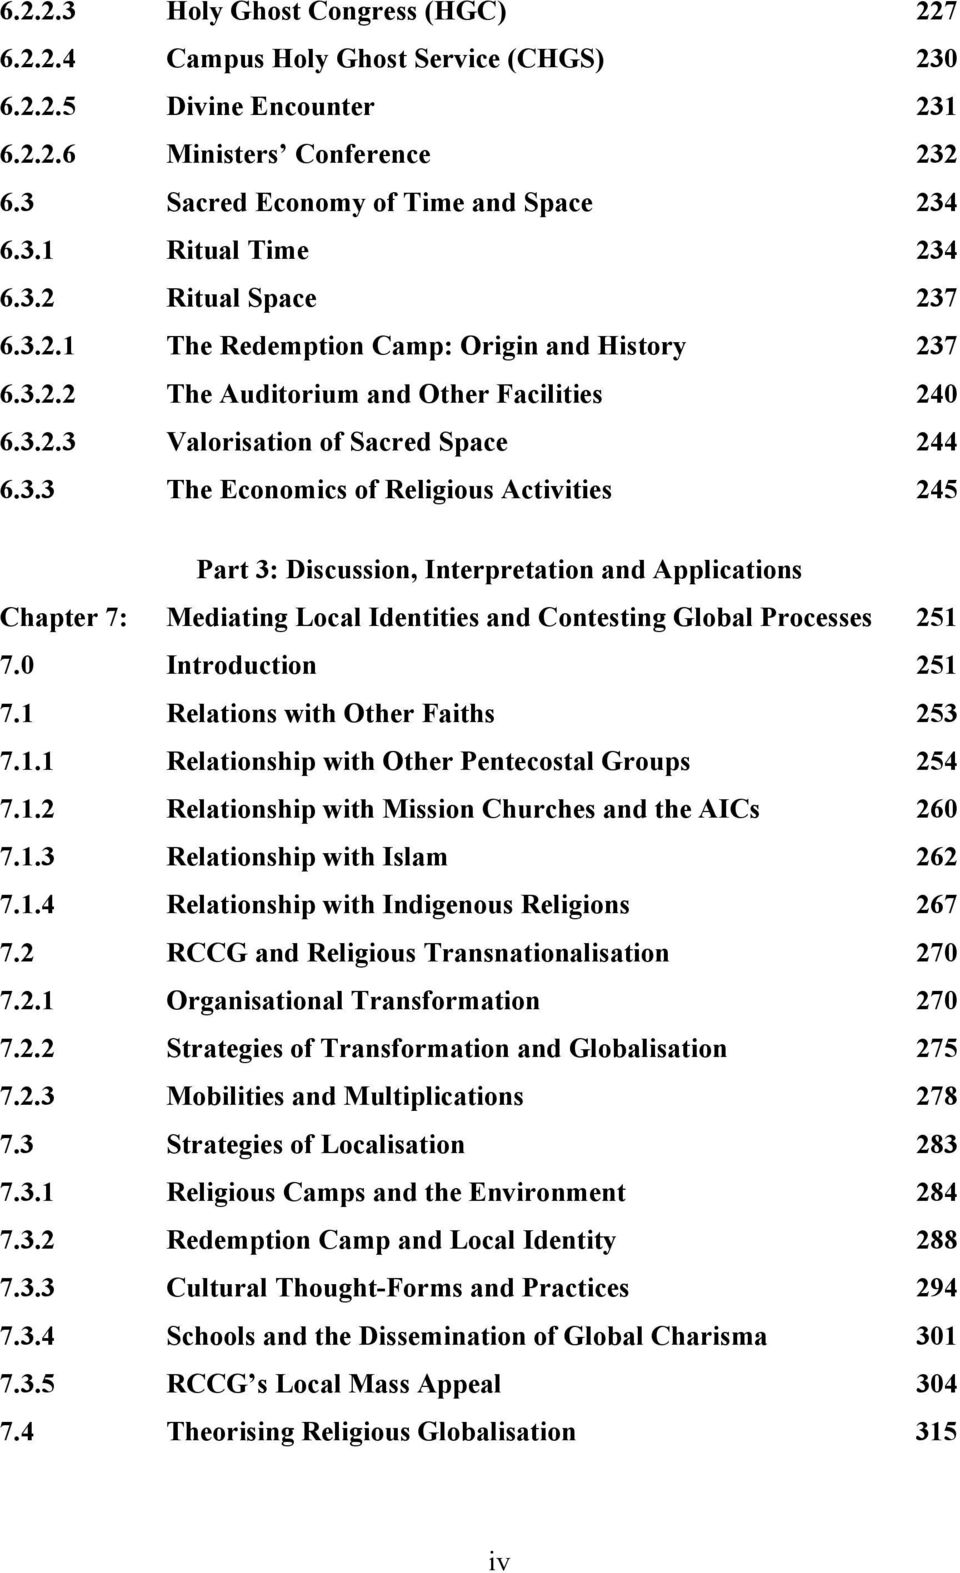 0 Introduction 251 7.1 Relations with Other Faiths 253 7.1.1 Relationship  with Other Pentecostal